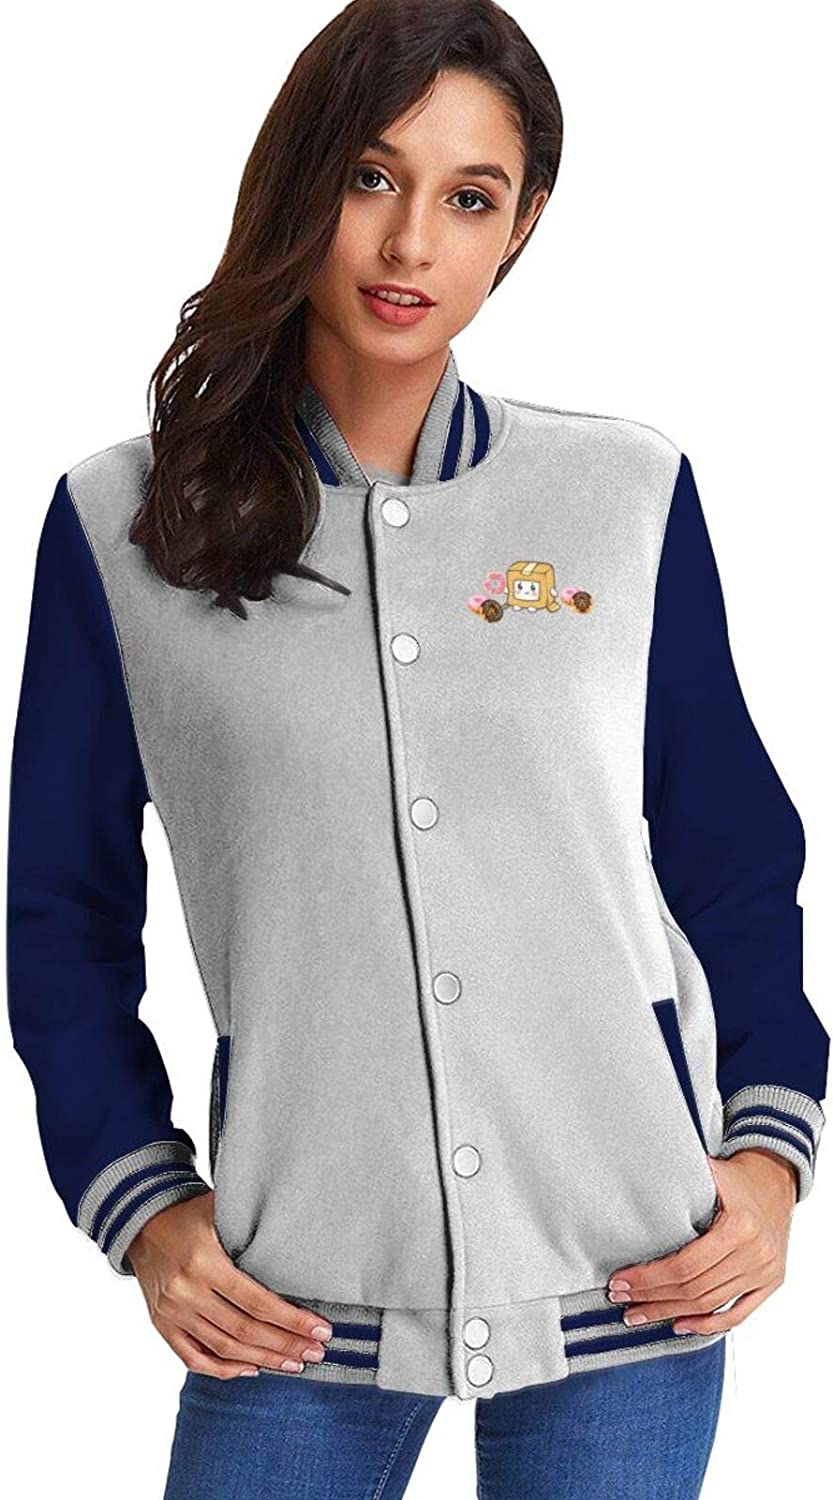 Lankybox Merch Boxy Women's Basebal Max 45% OFF Casual Plush Spring new work one after another Jacket